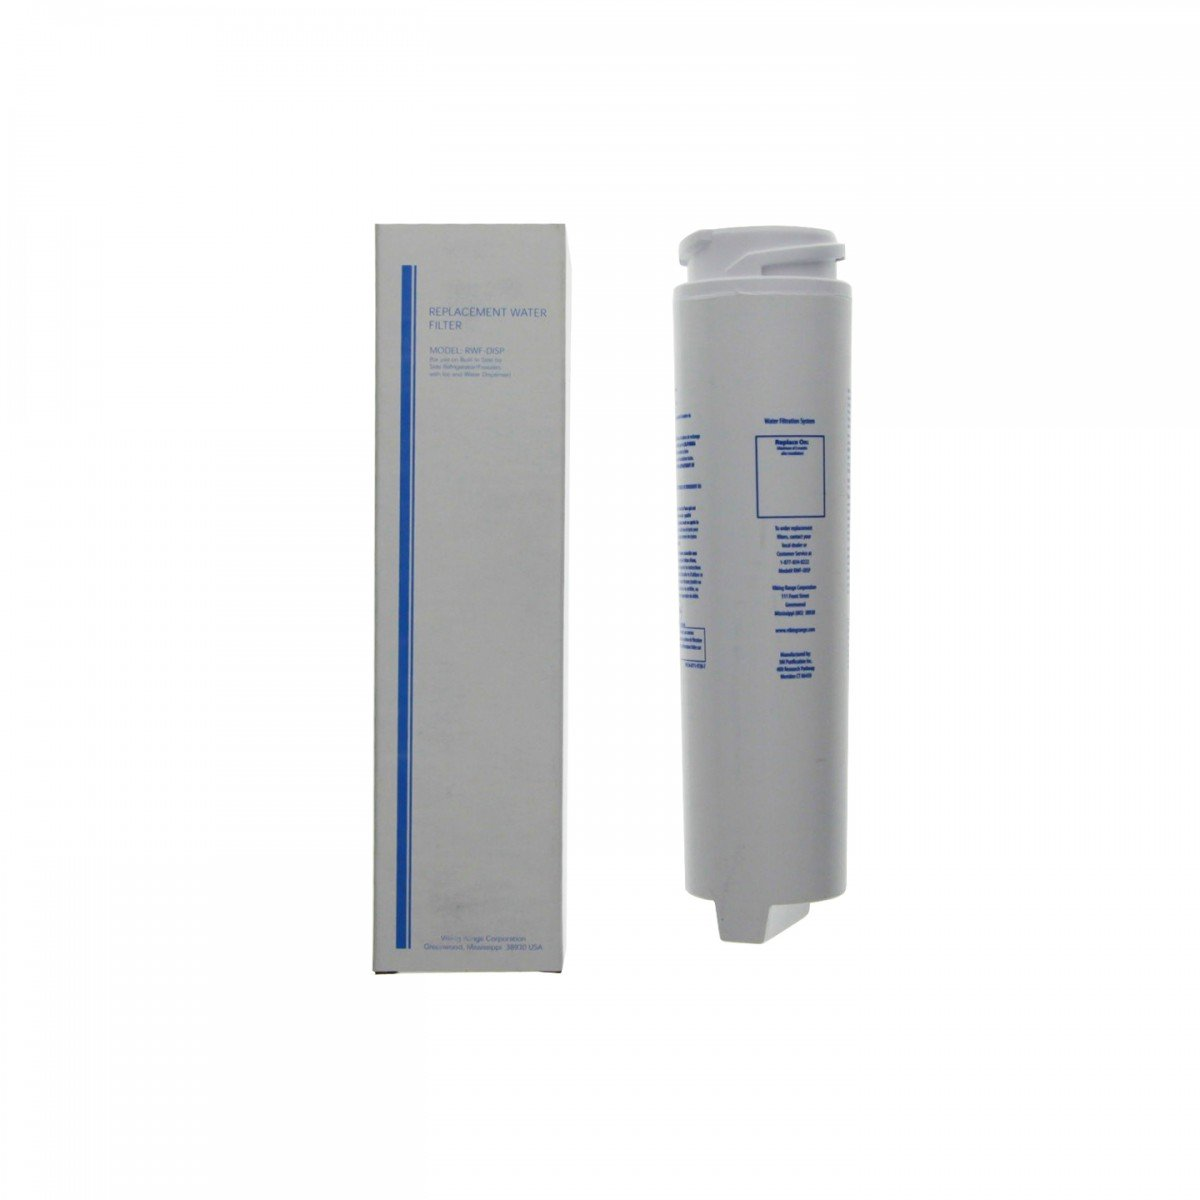 RWFDISP Viking Refrigerator Water Filter Cartridge, 2 Filter